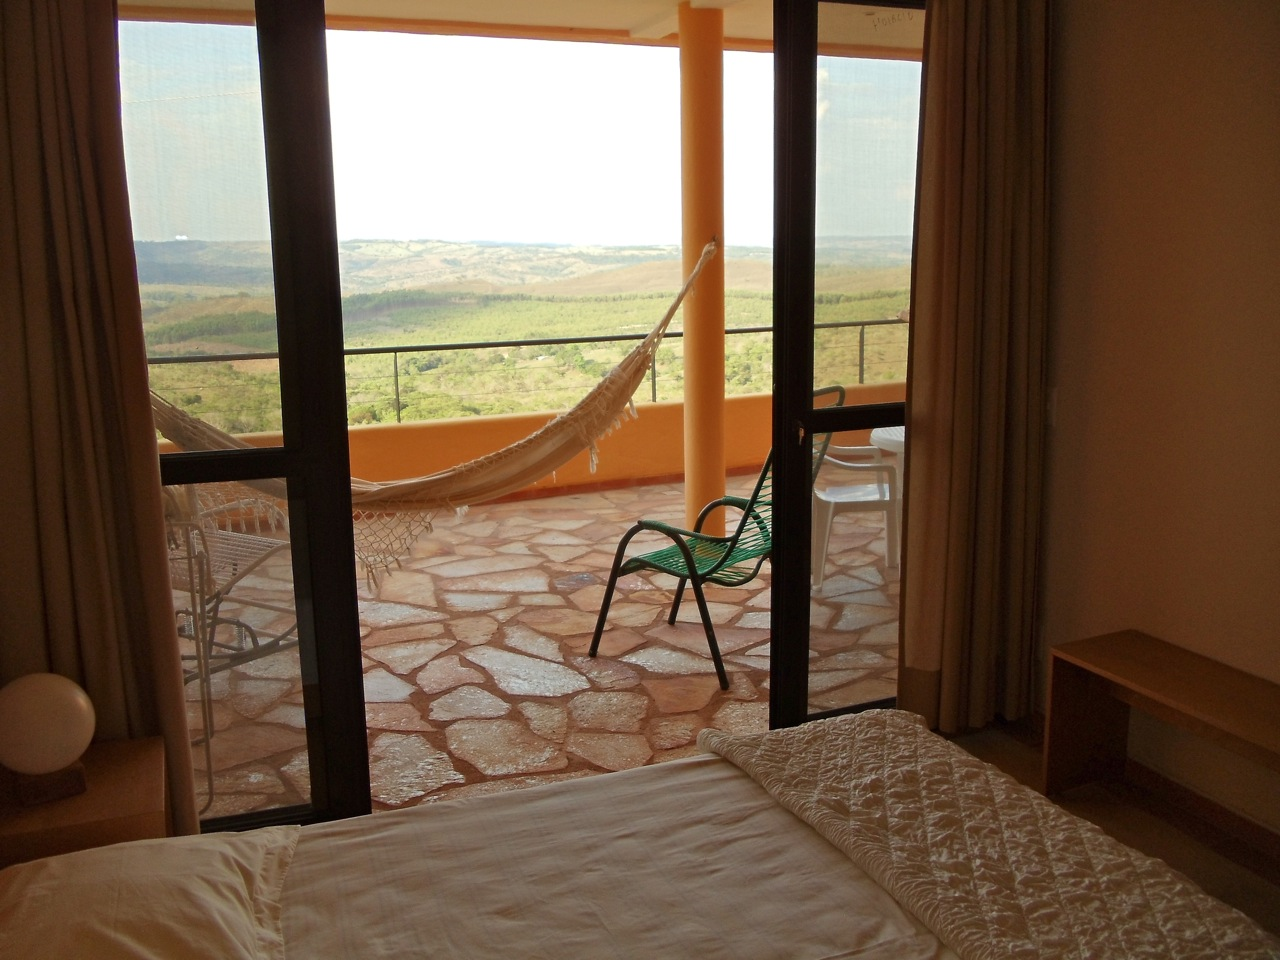 From the bedroom of Alegria, across the spacious, covered private veranda/lanai, opening up to the endless lush green rolling hills surrounding Abadiania.